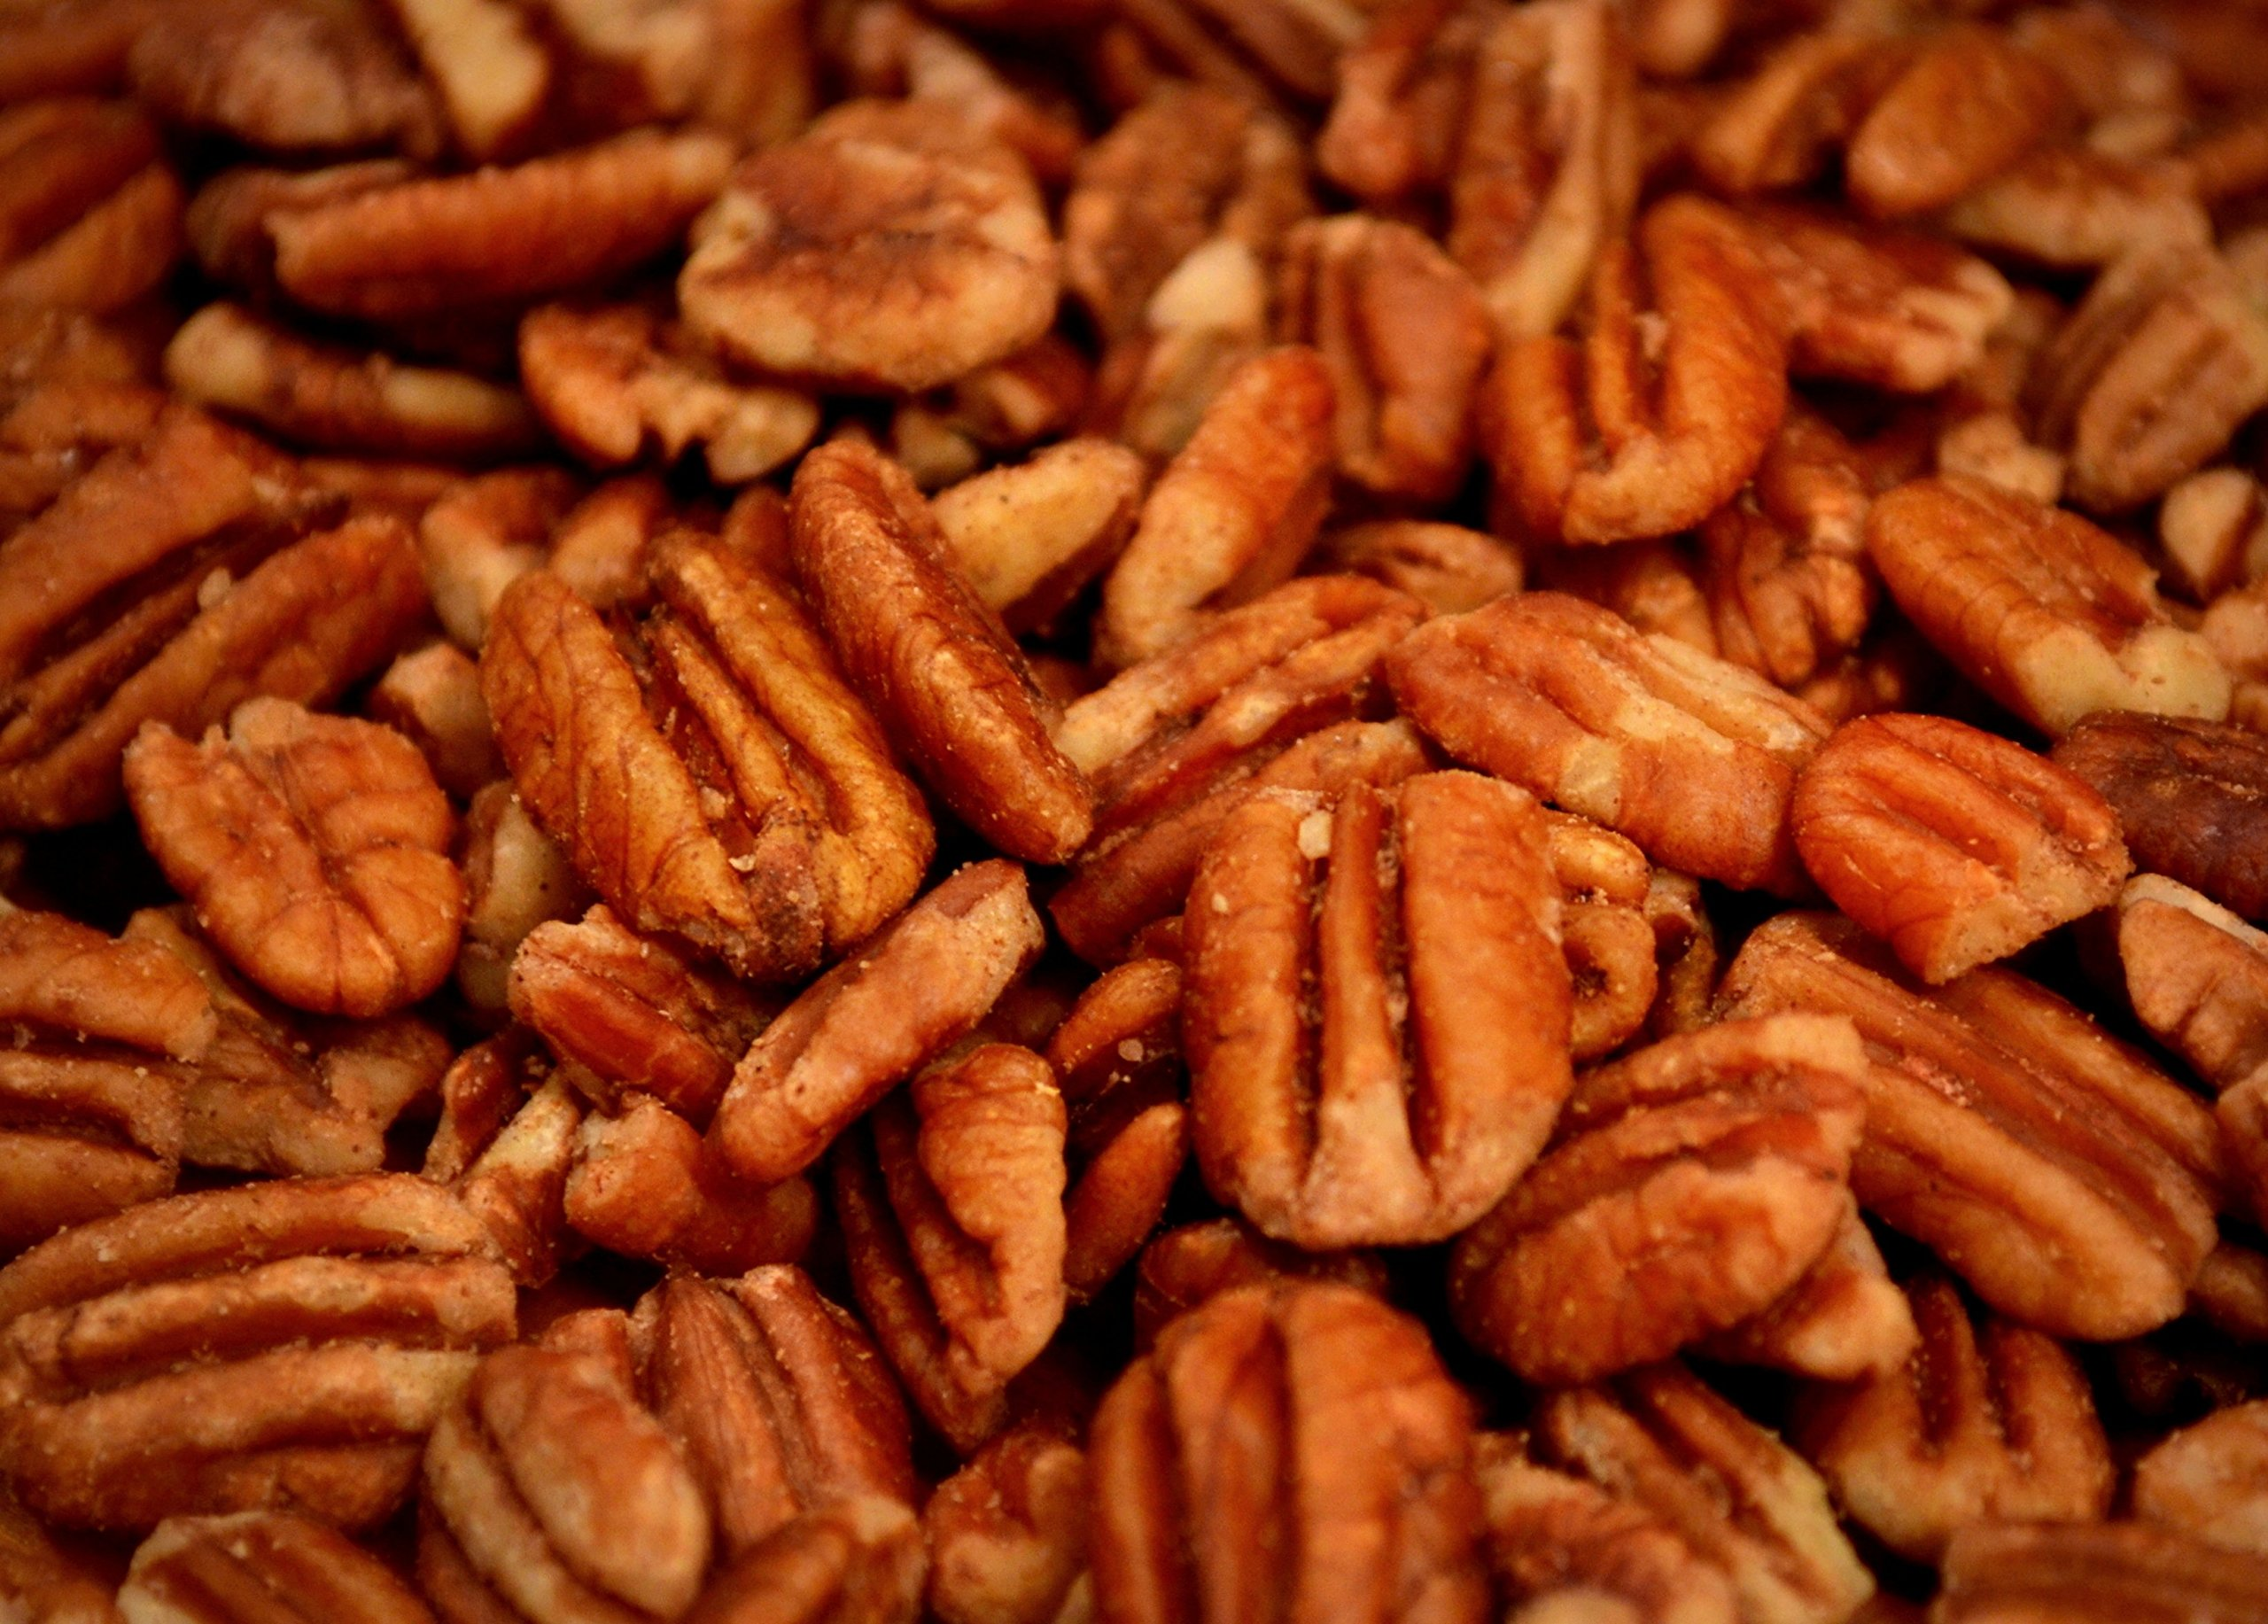 Unsprayed Sprouted 2 lb Raw Certified Organic Family Recipe Crispy Sea Salt Texas Native Pecans-Fresh Direct Ship